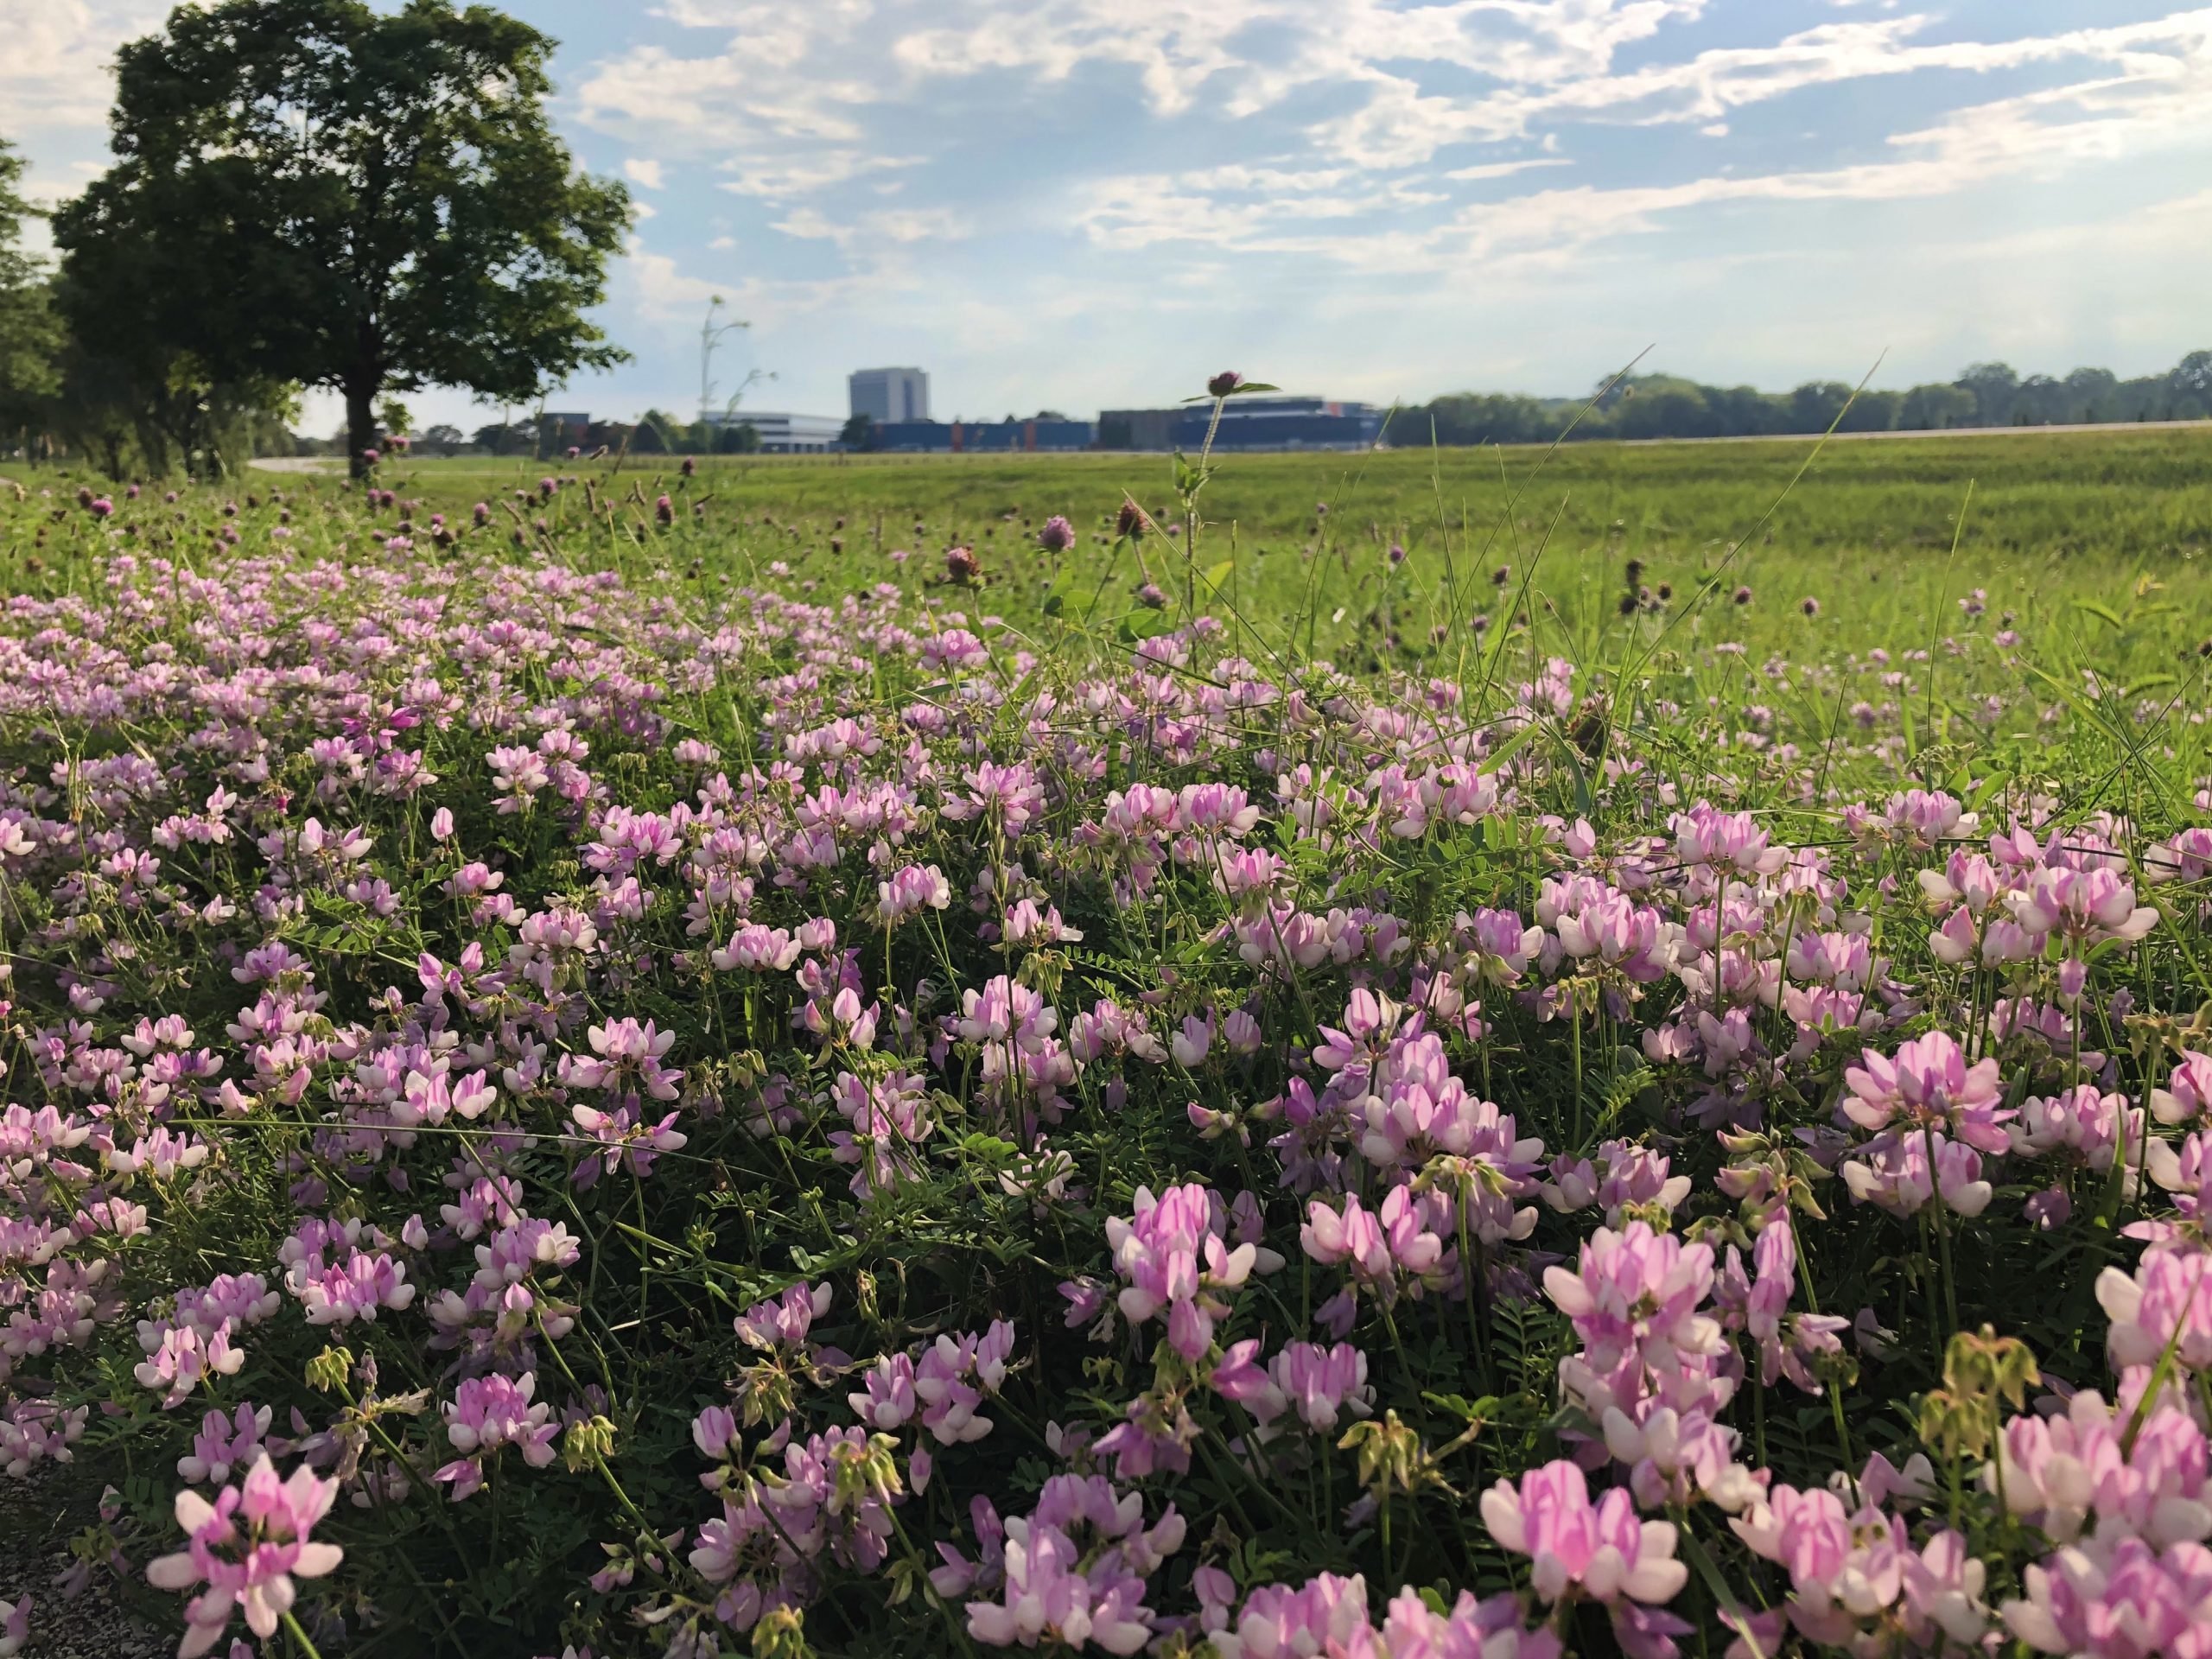 A field of flowers stretches toward the horizon on July 8. nature, landscape, flower, plant, prairie, building, Wilson Hall Photo: Maria Martinez Casales